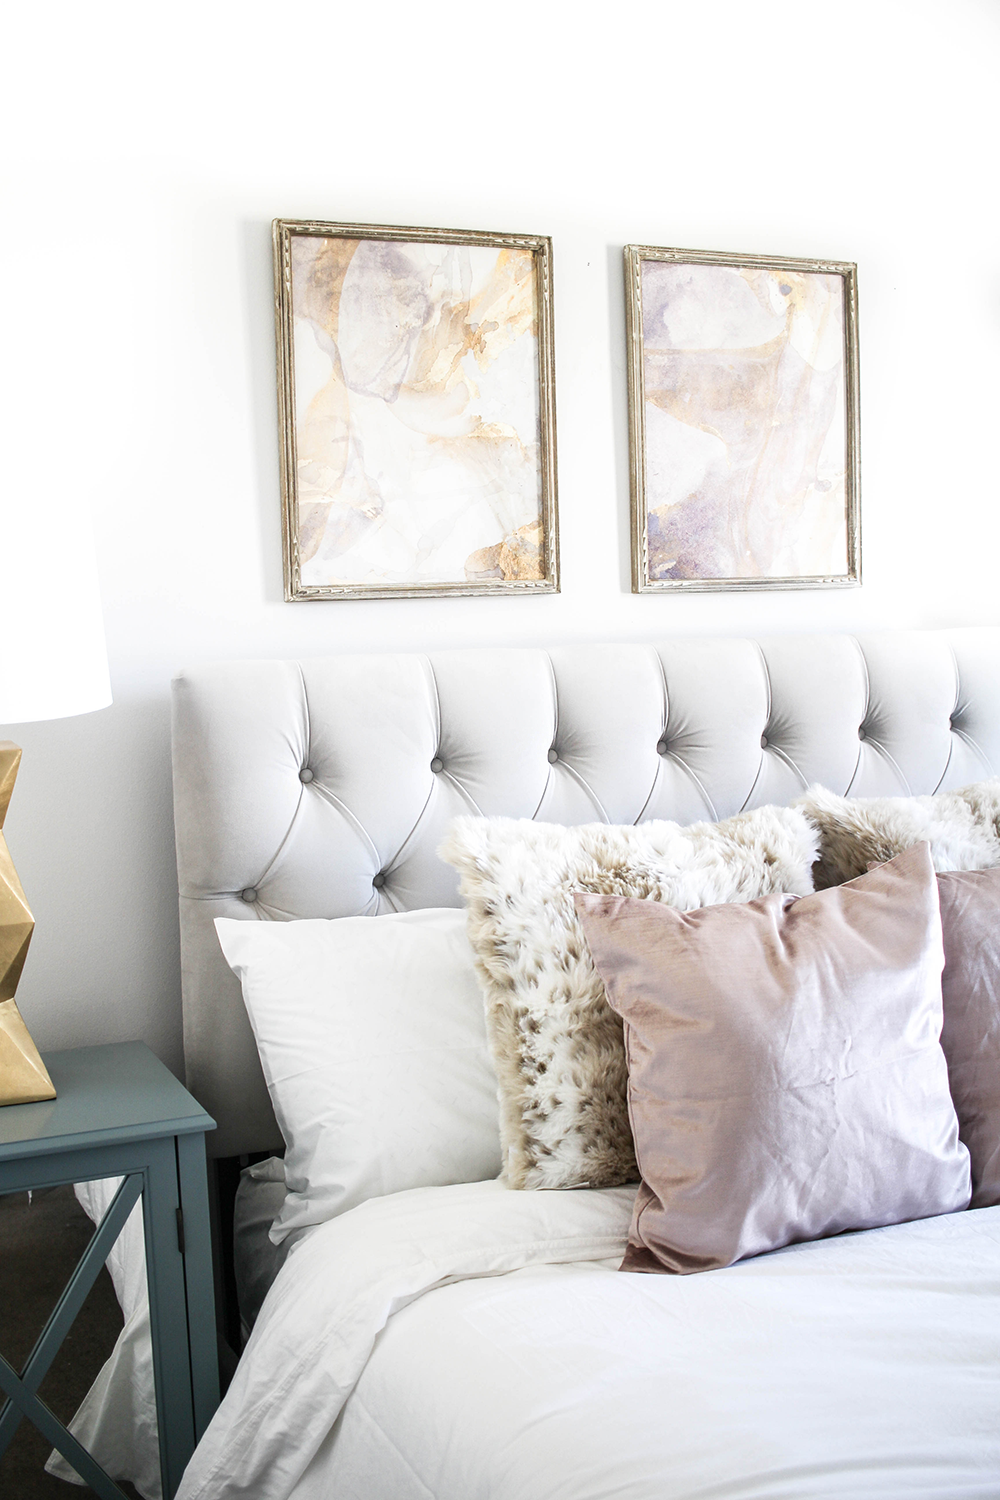 Bedroom Tour | Velvet headboard, Velvet pillows and Neutral